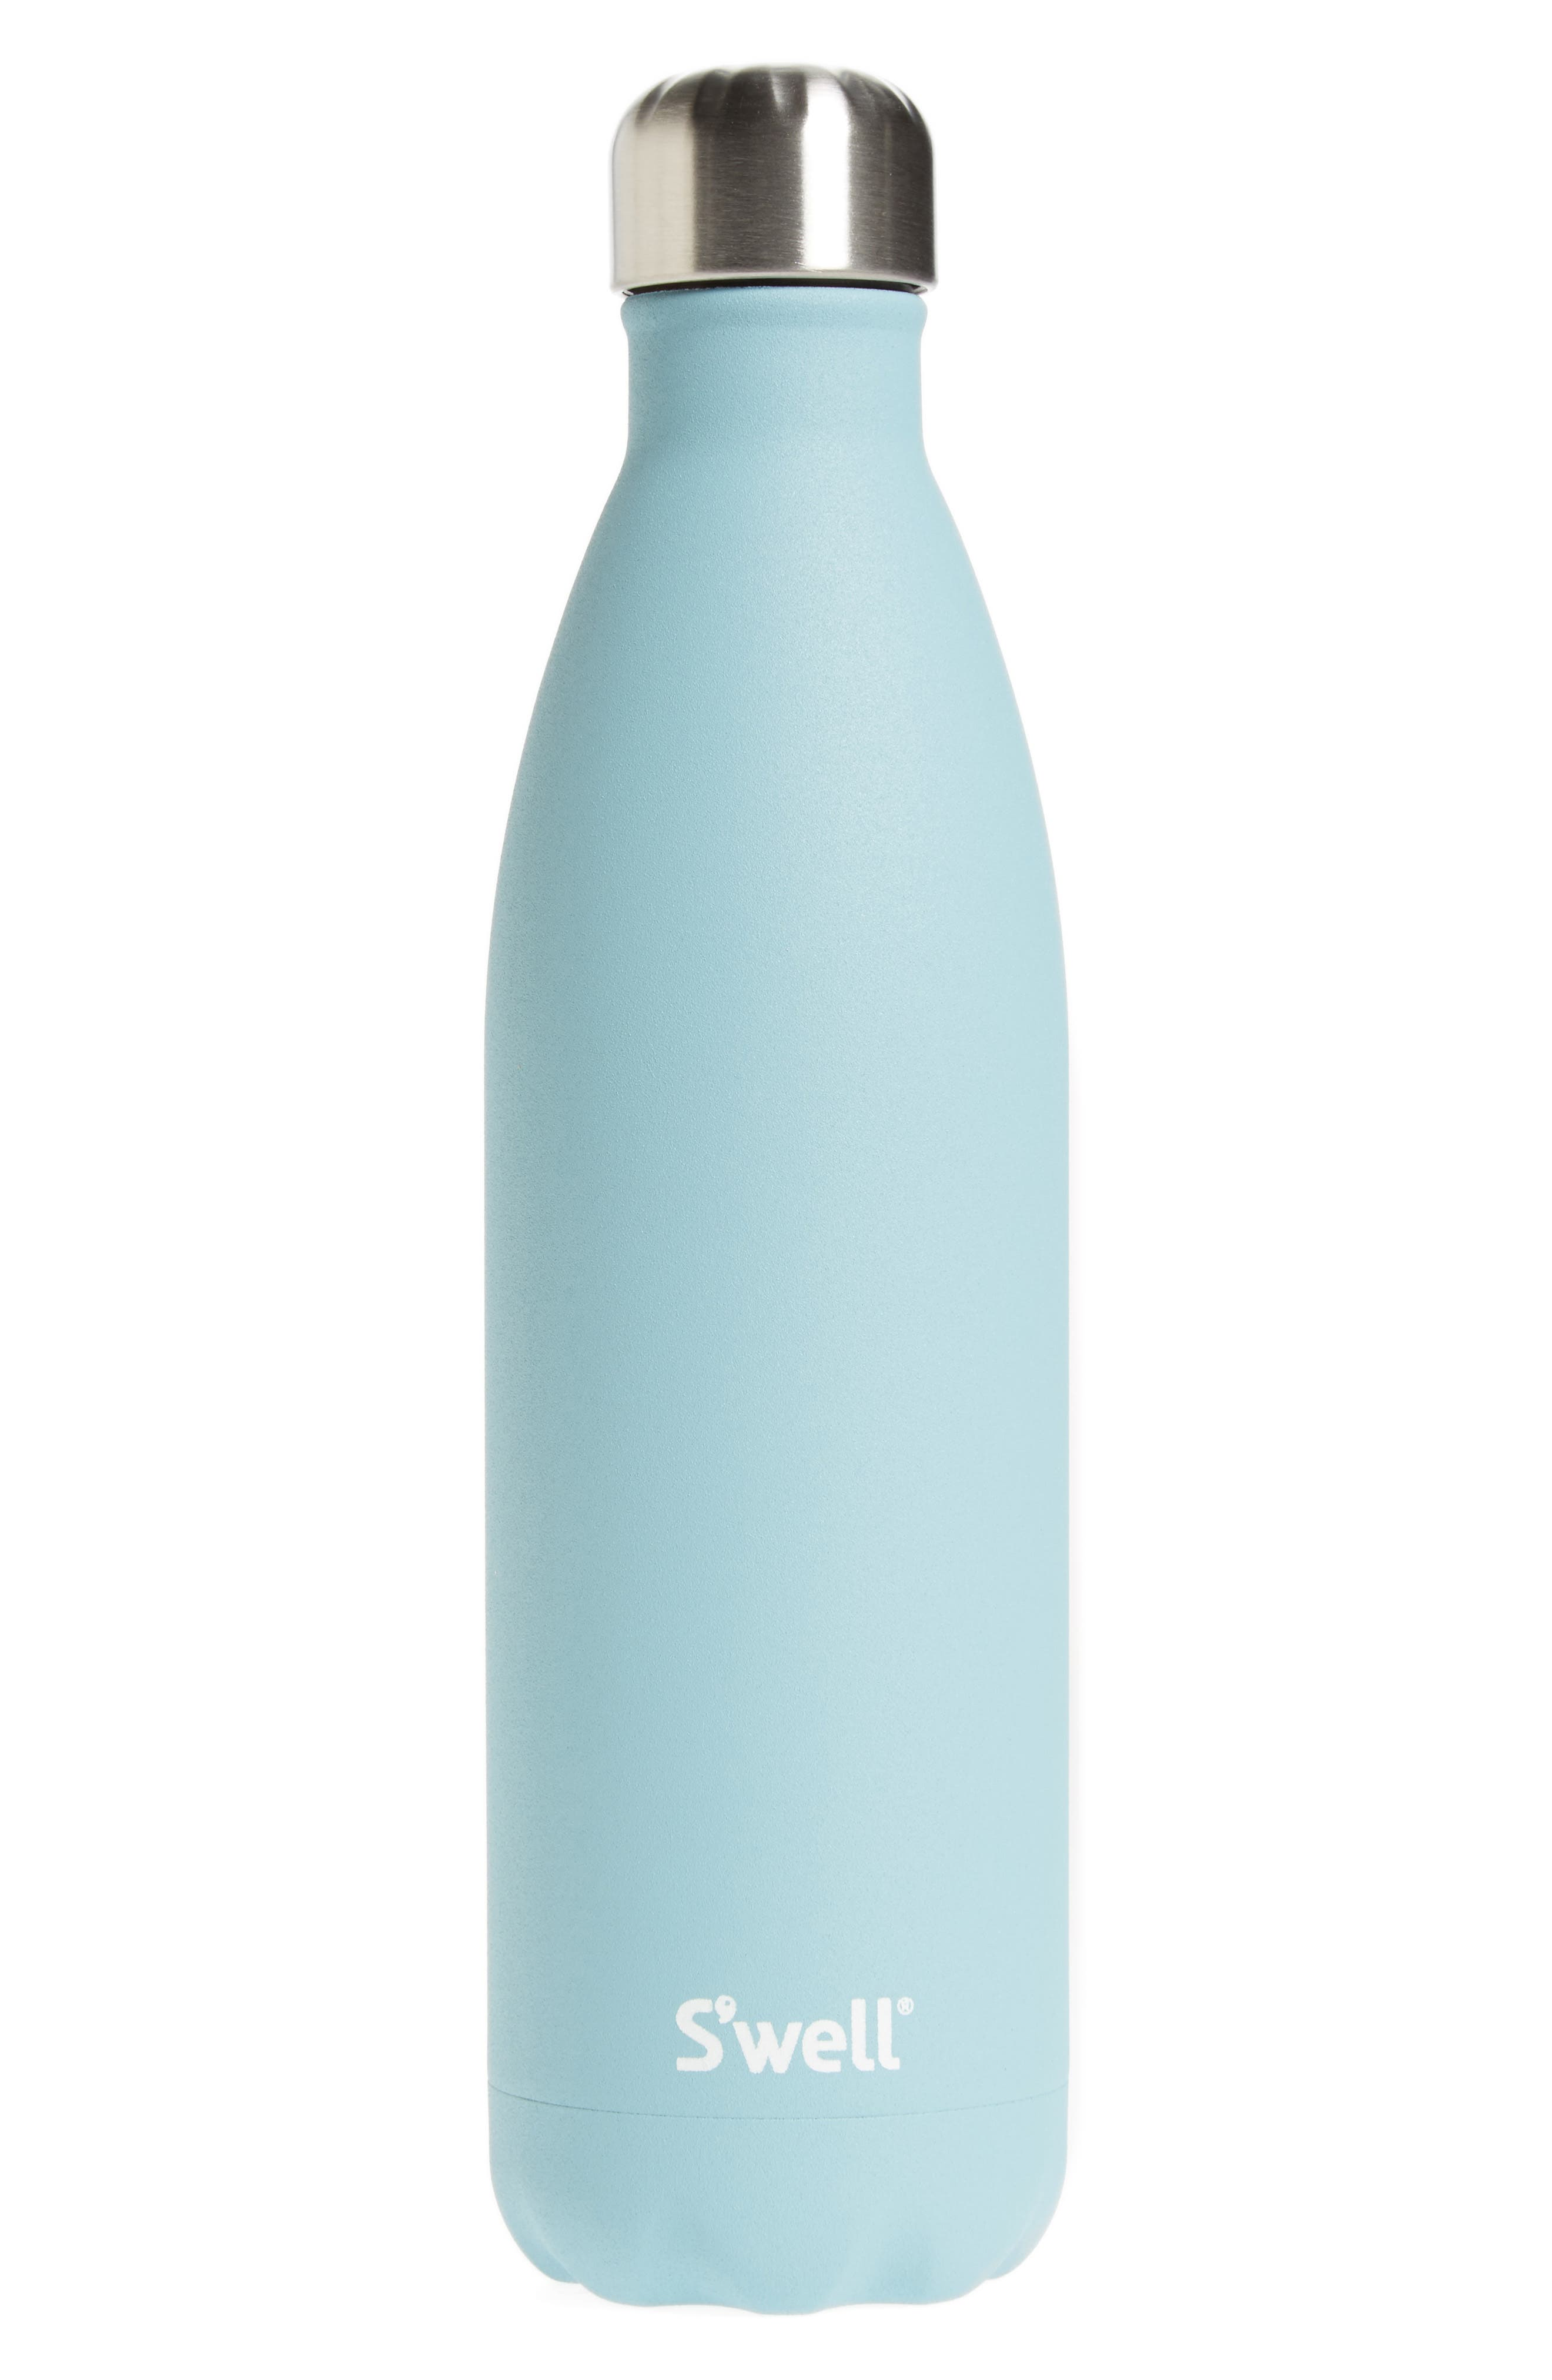 S'well Aquamarine Insulated Stainless Steel Water Bottle